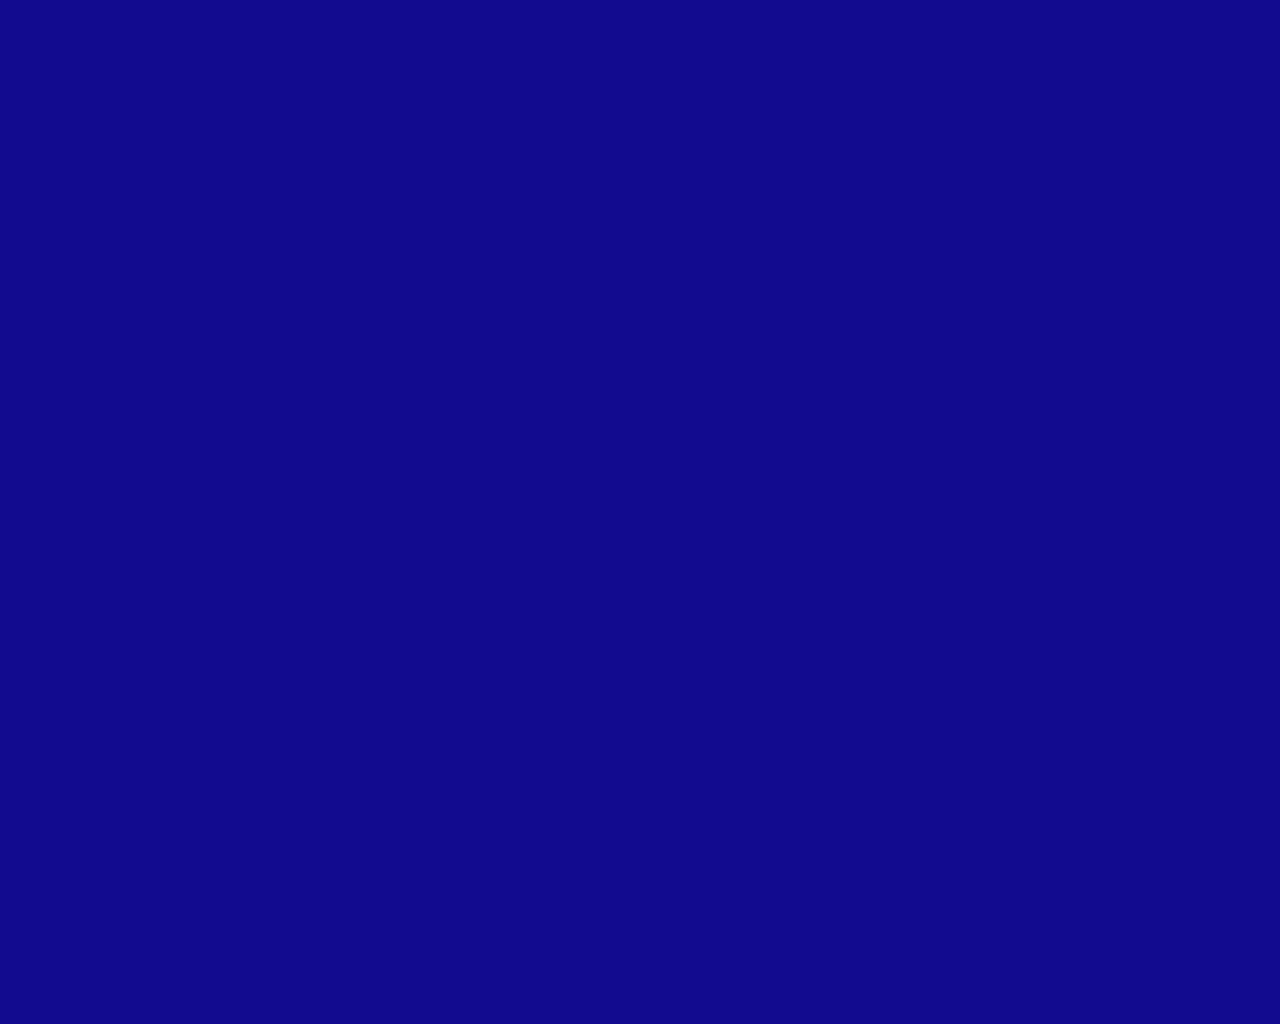 1280x1024 Ultramarine Solid Color Background